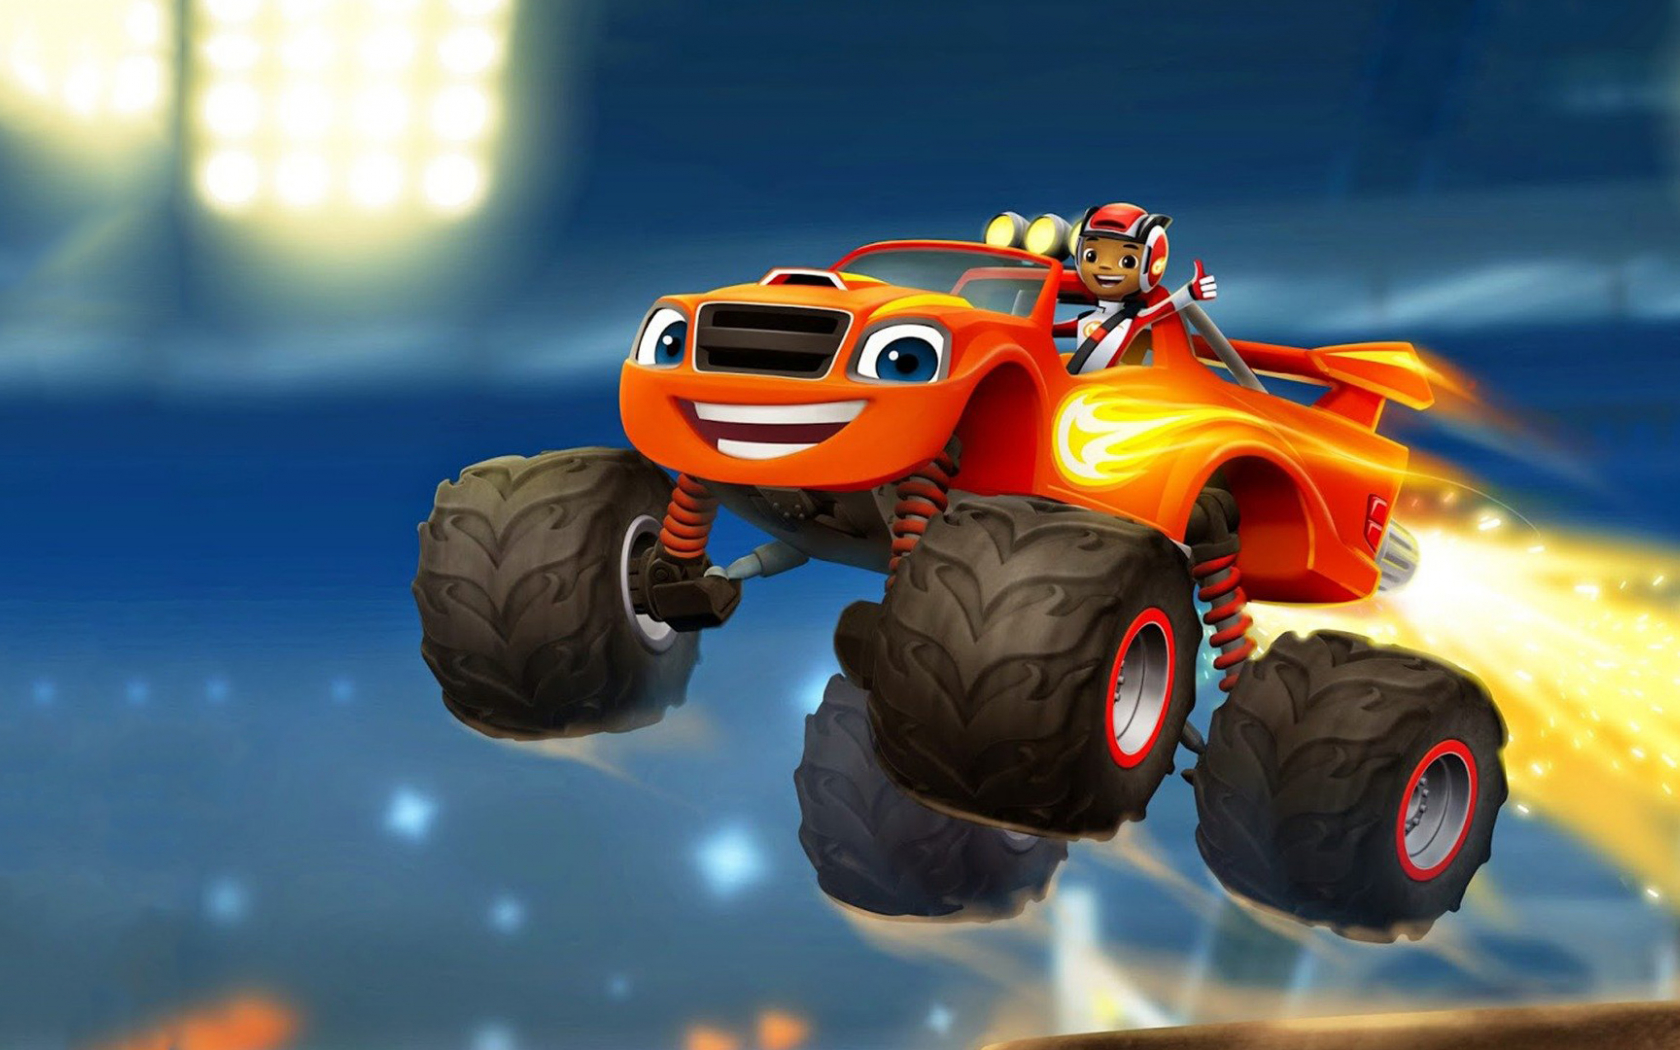 Free Download Blaze And The Monster Machines Png 101 Images In